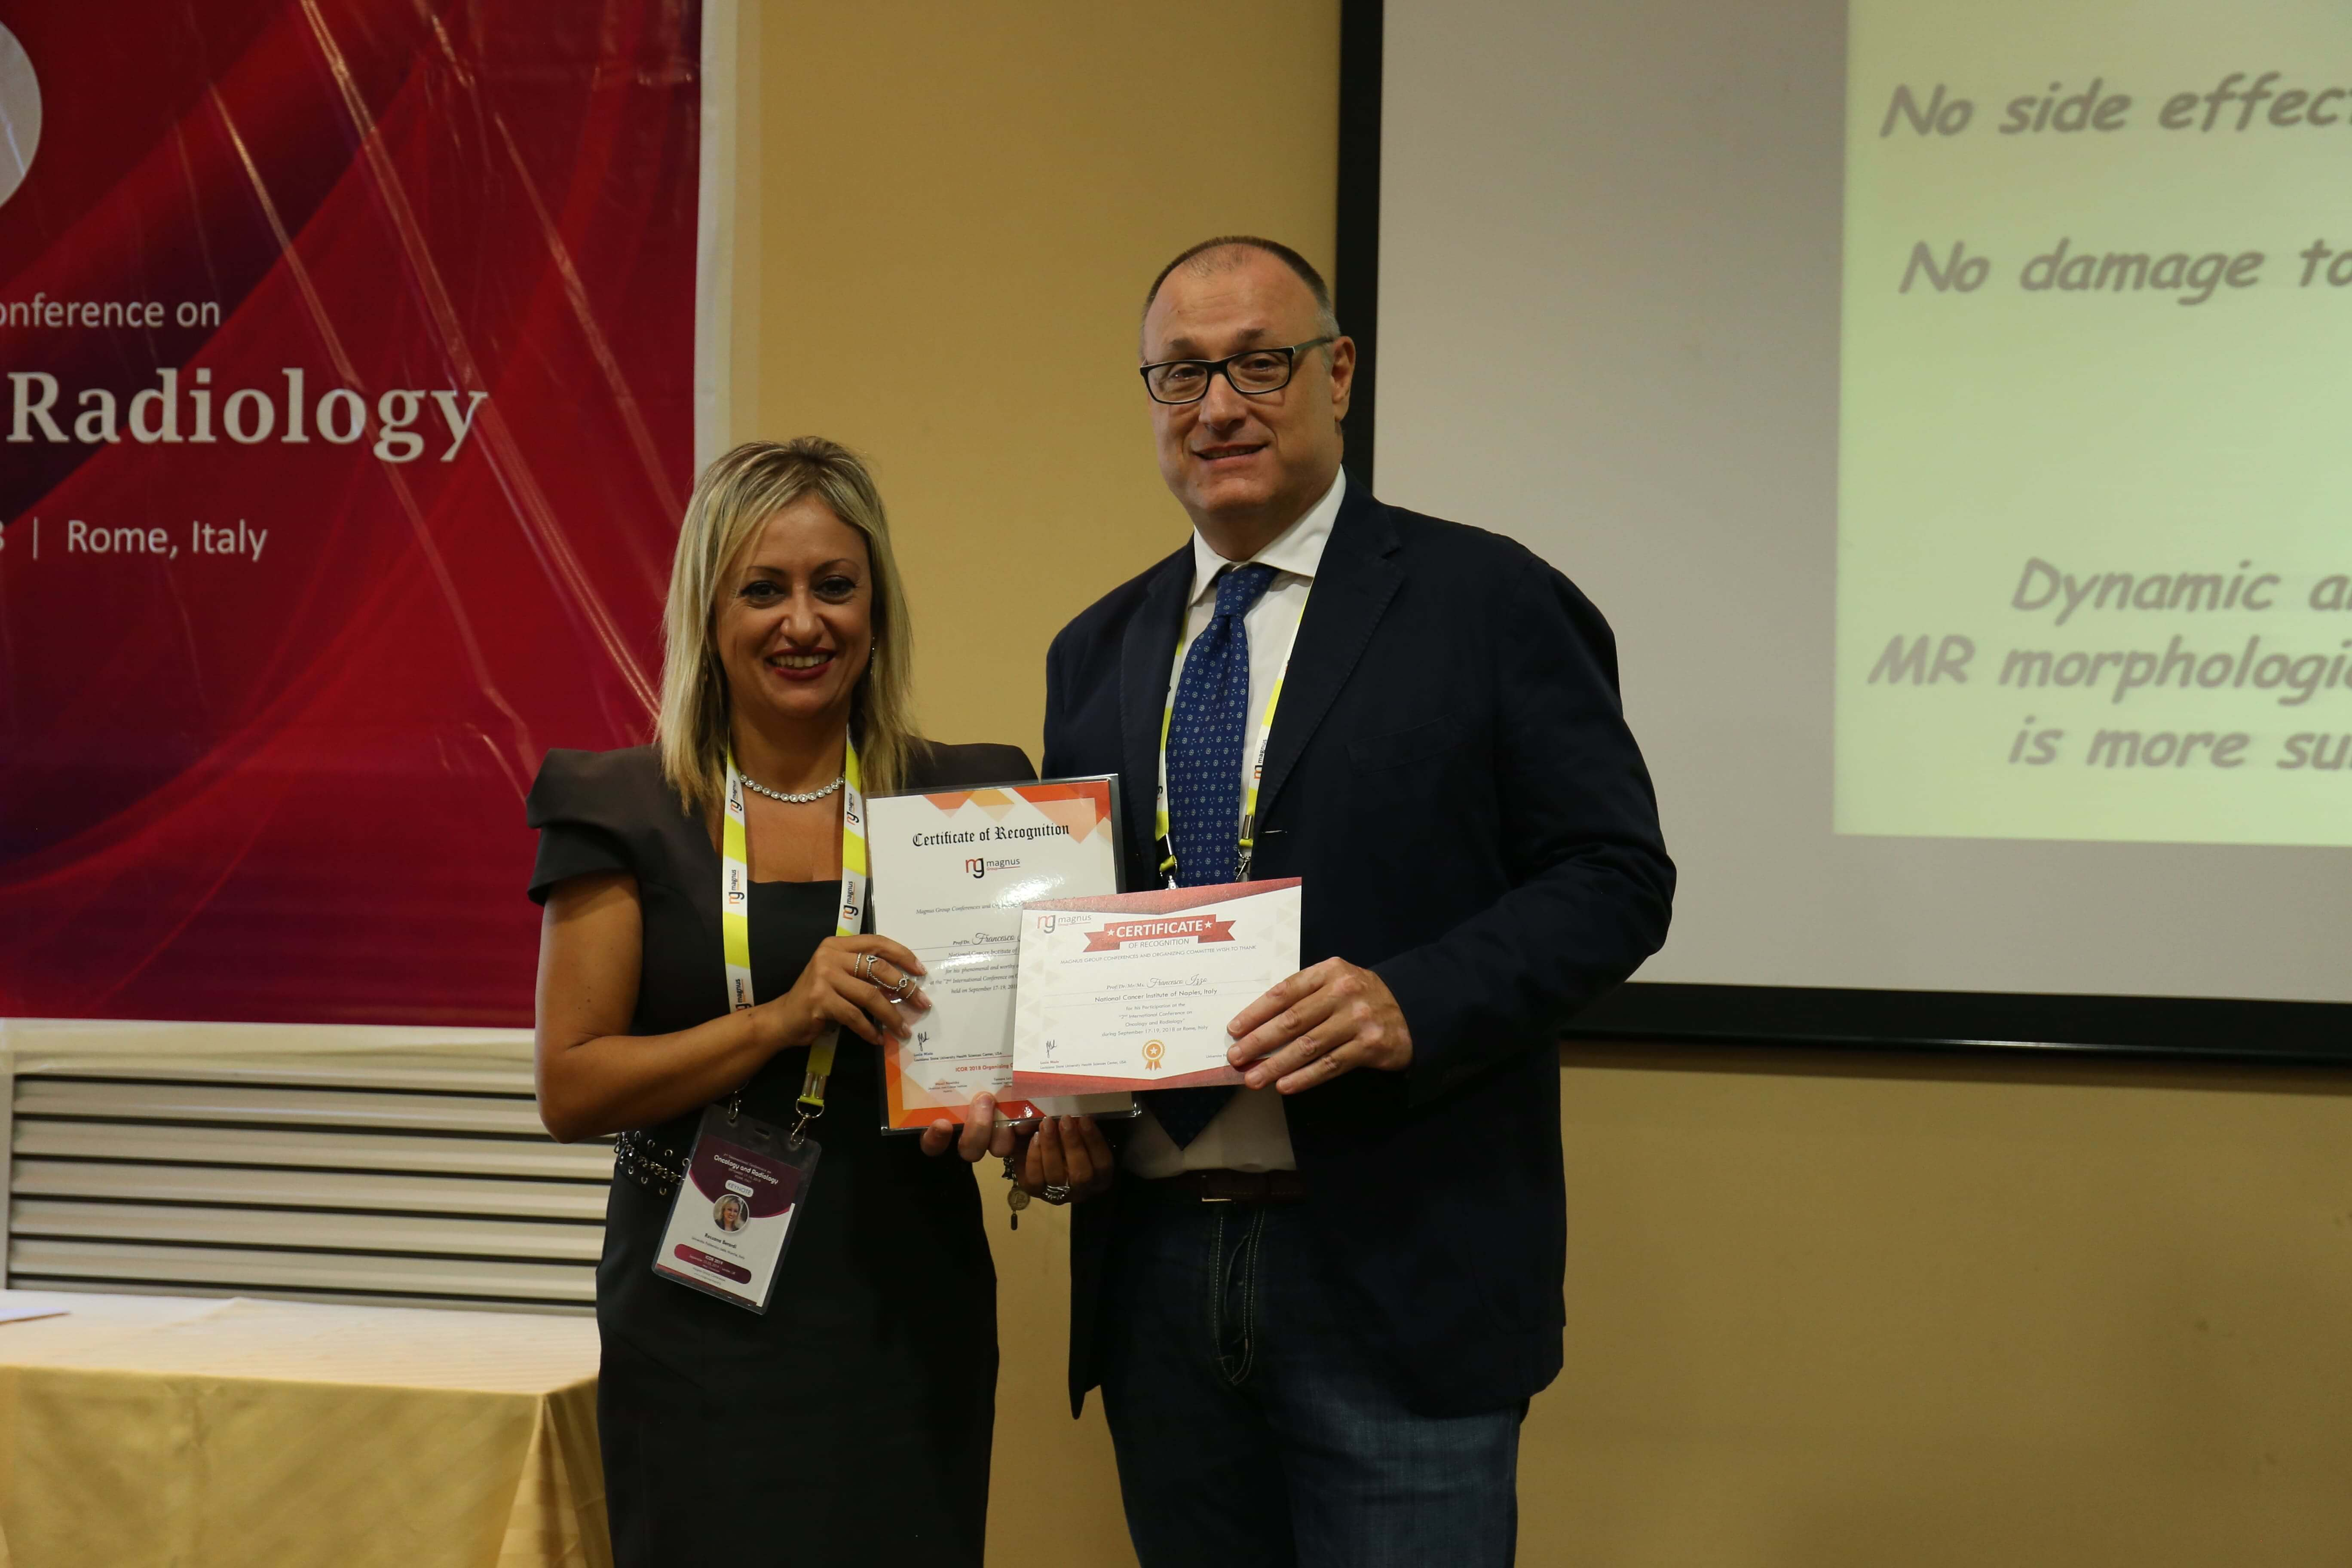 Cancer Conference 2018   Rome, Italy   Cancer Conferences ...